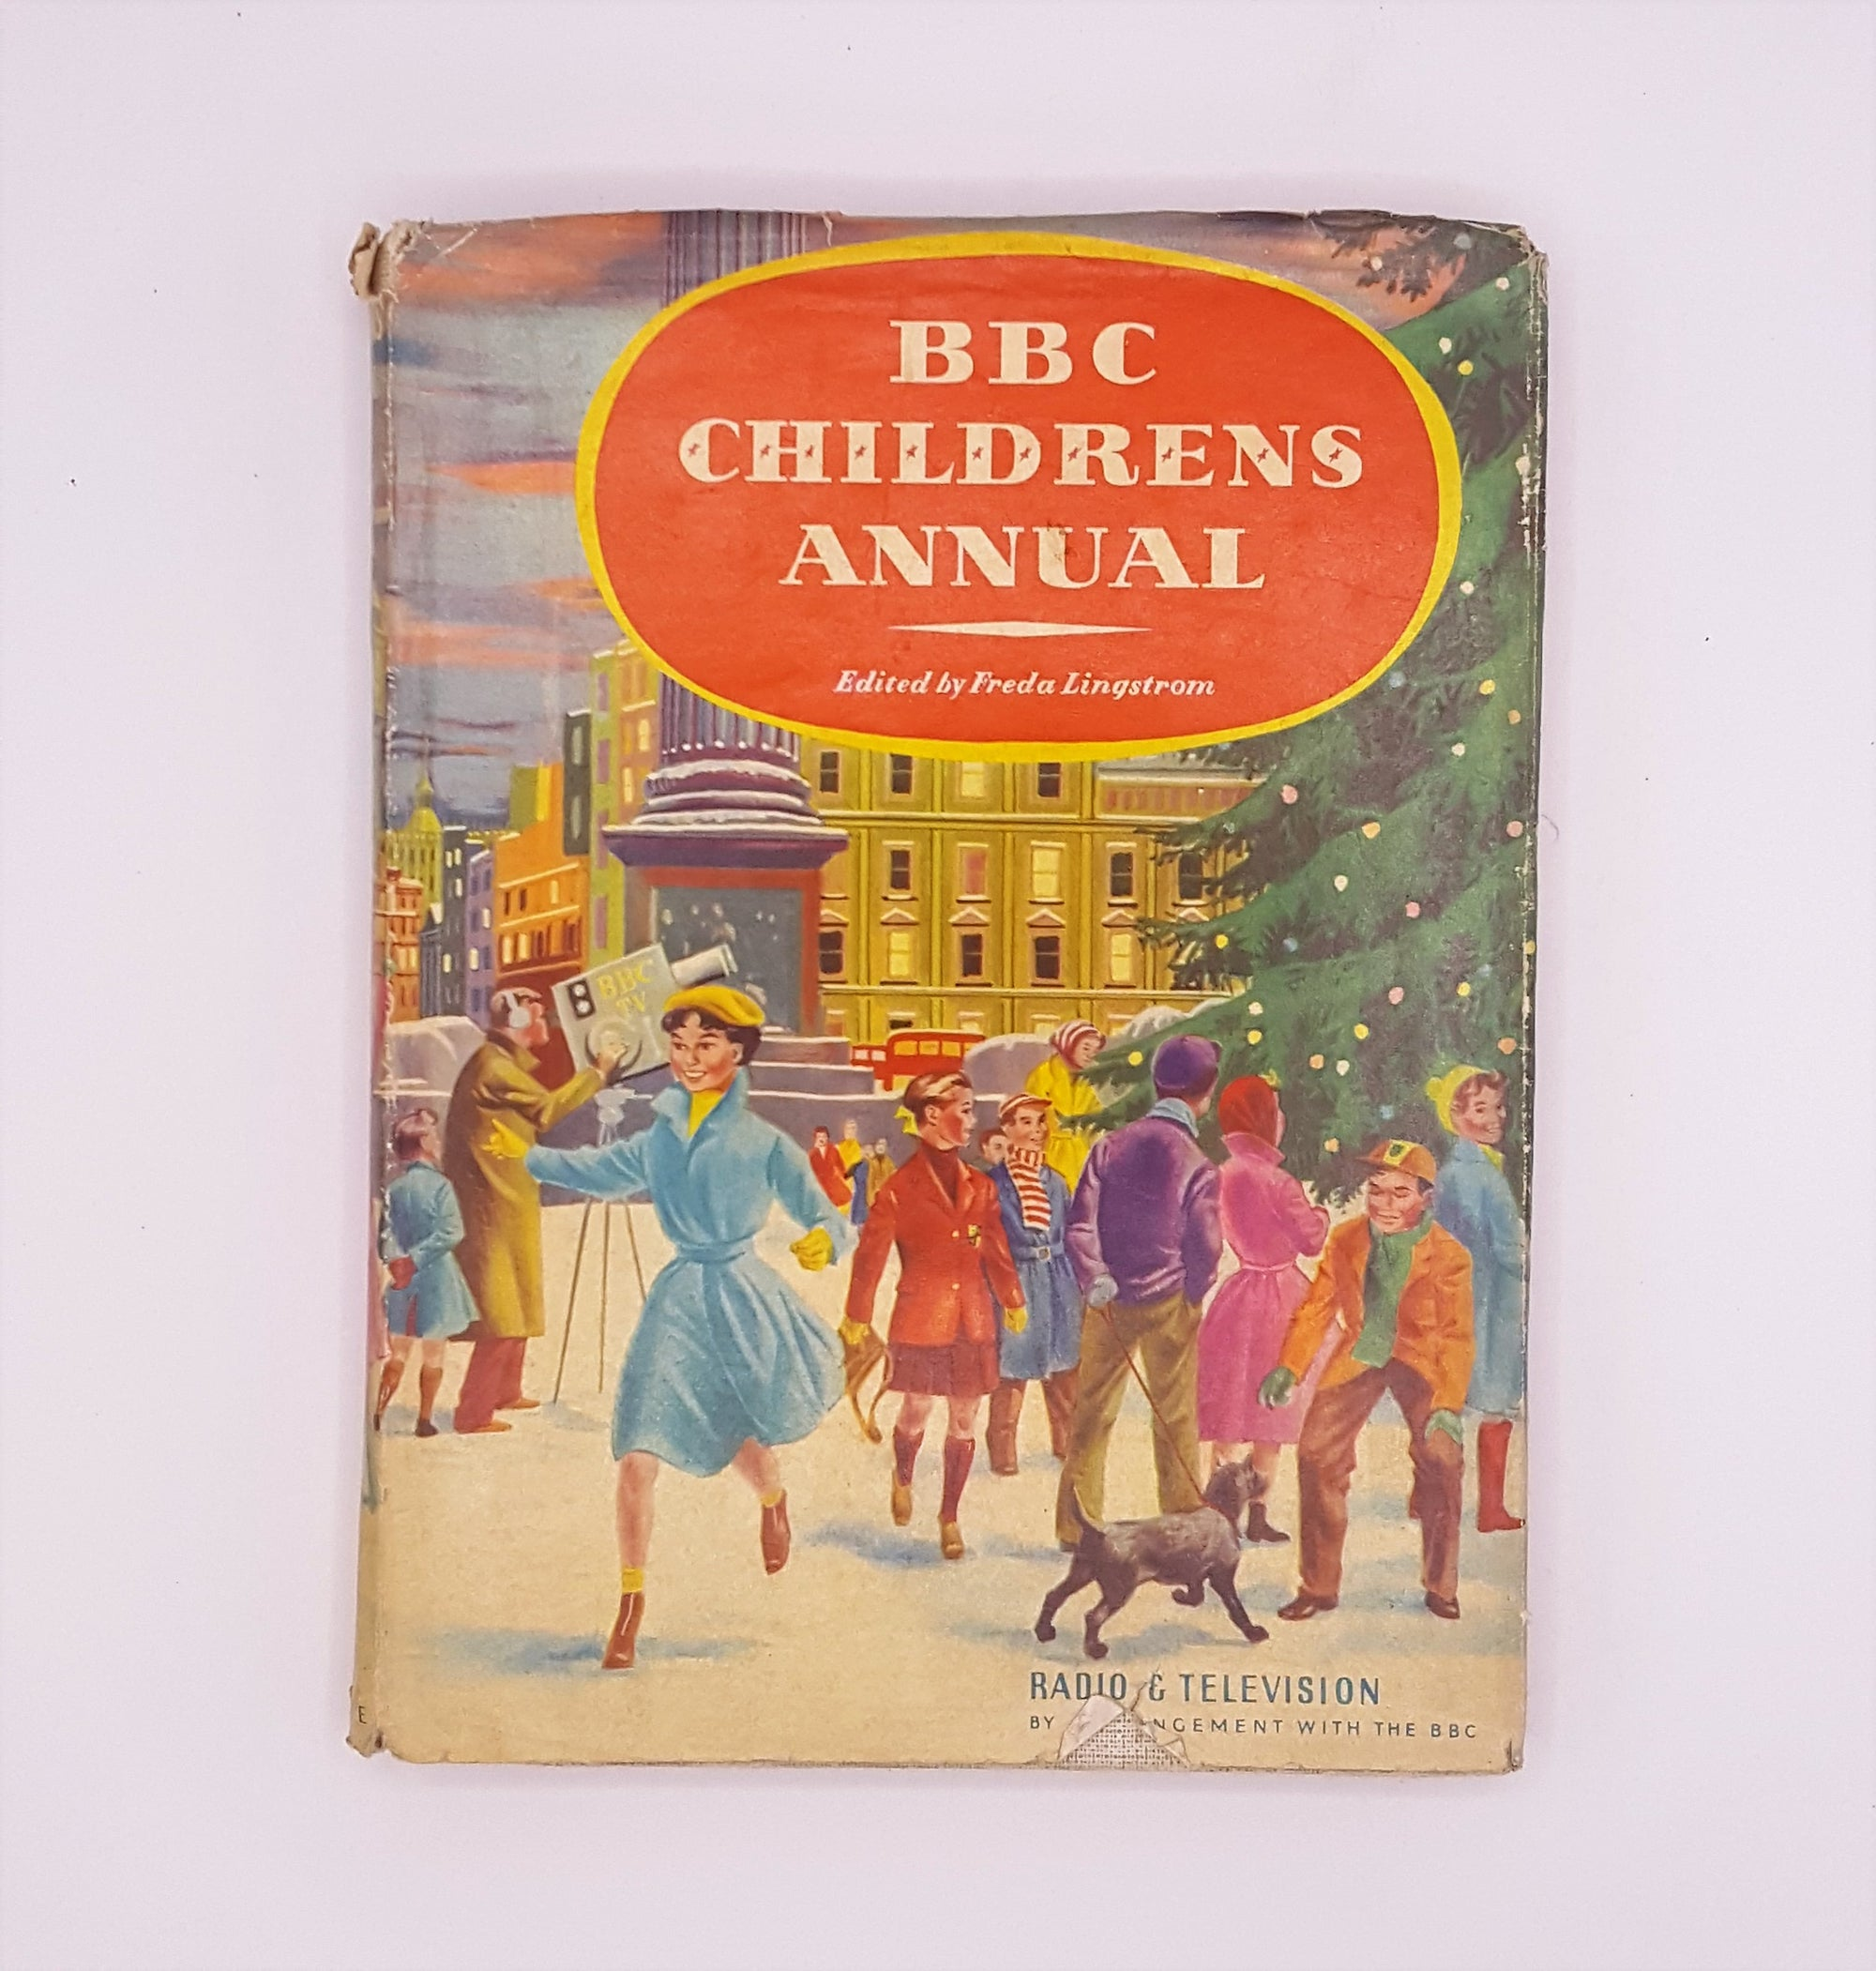 BBC Childrens Annual 1957